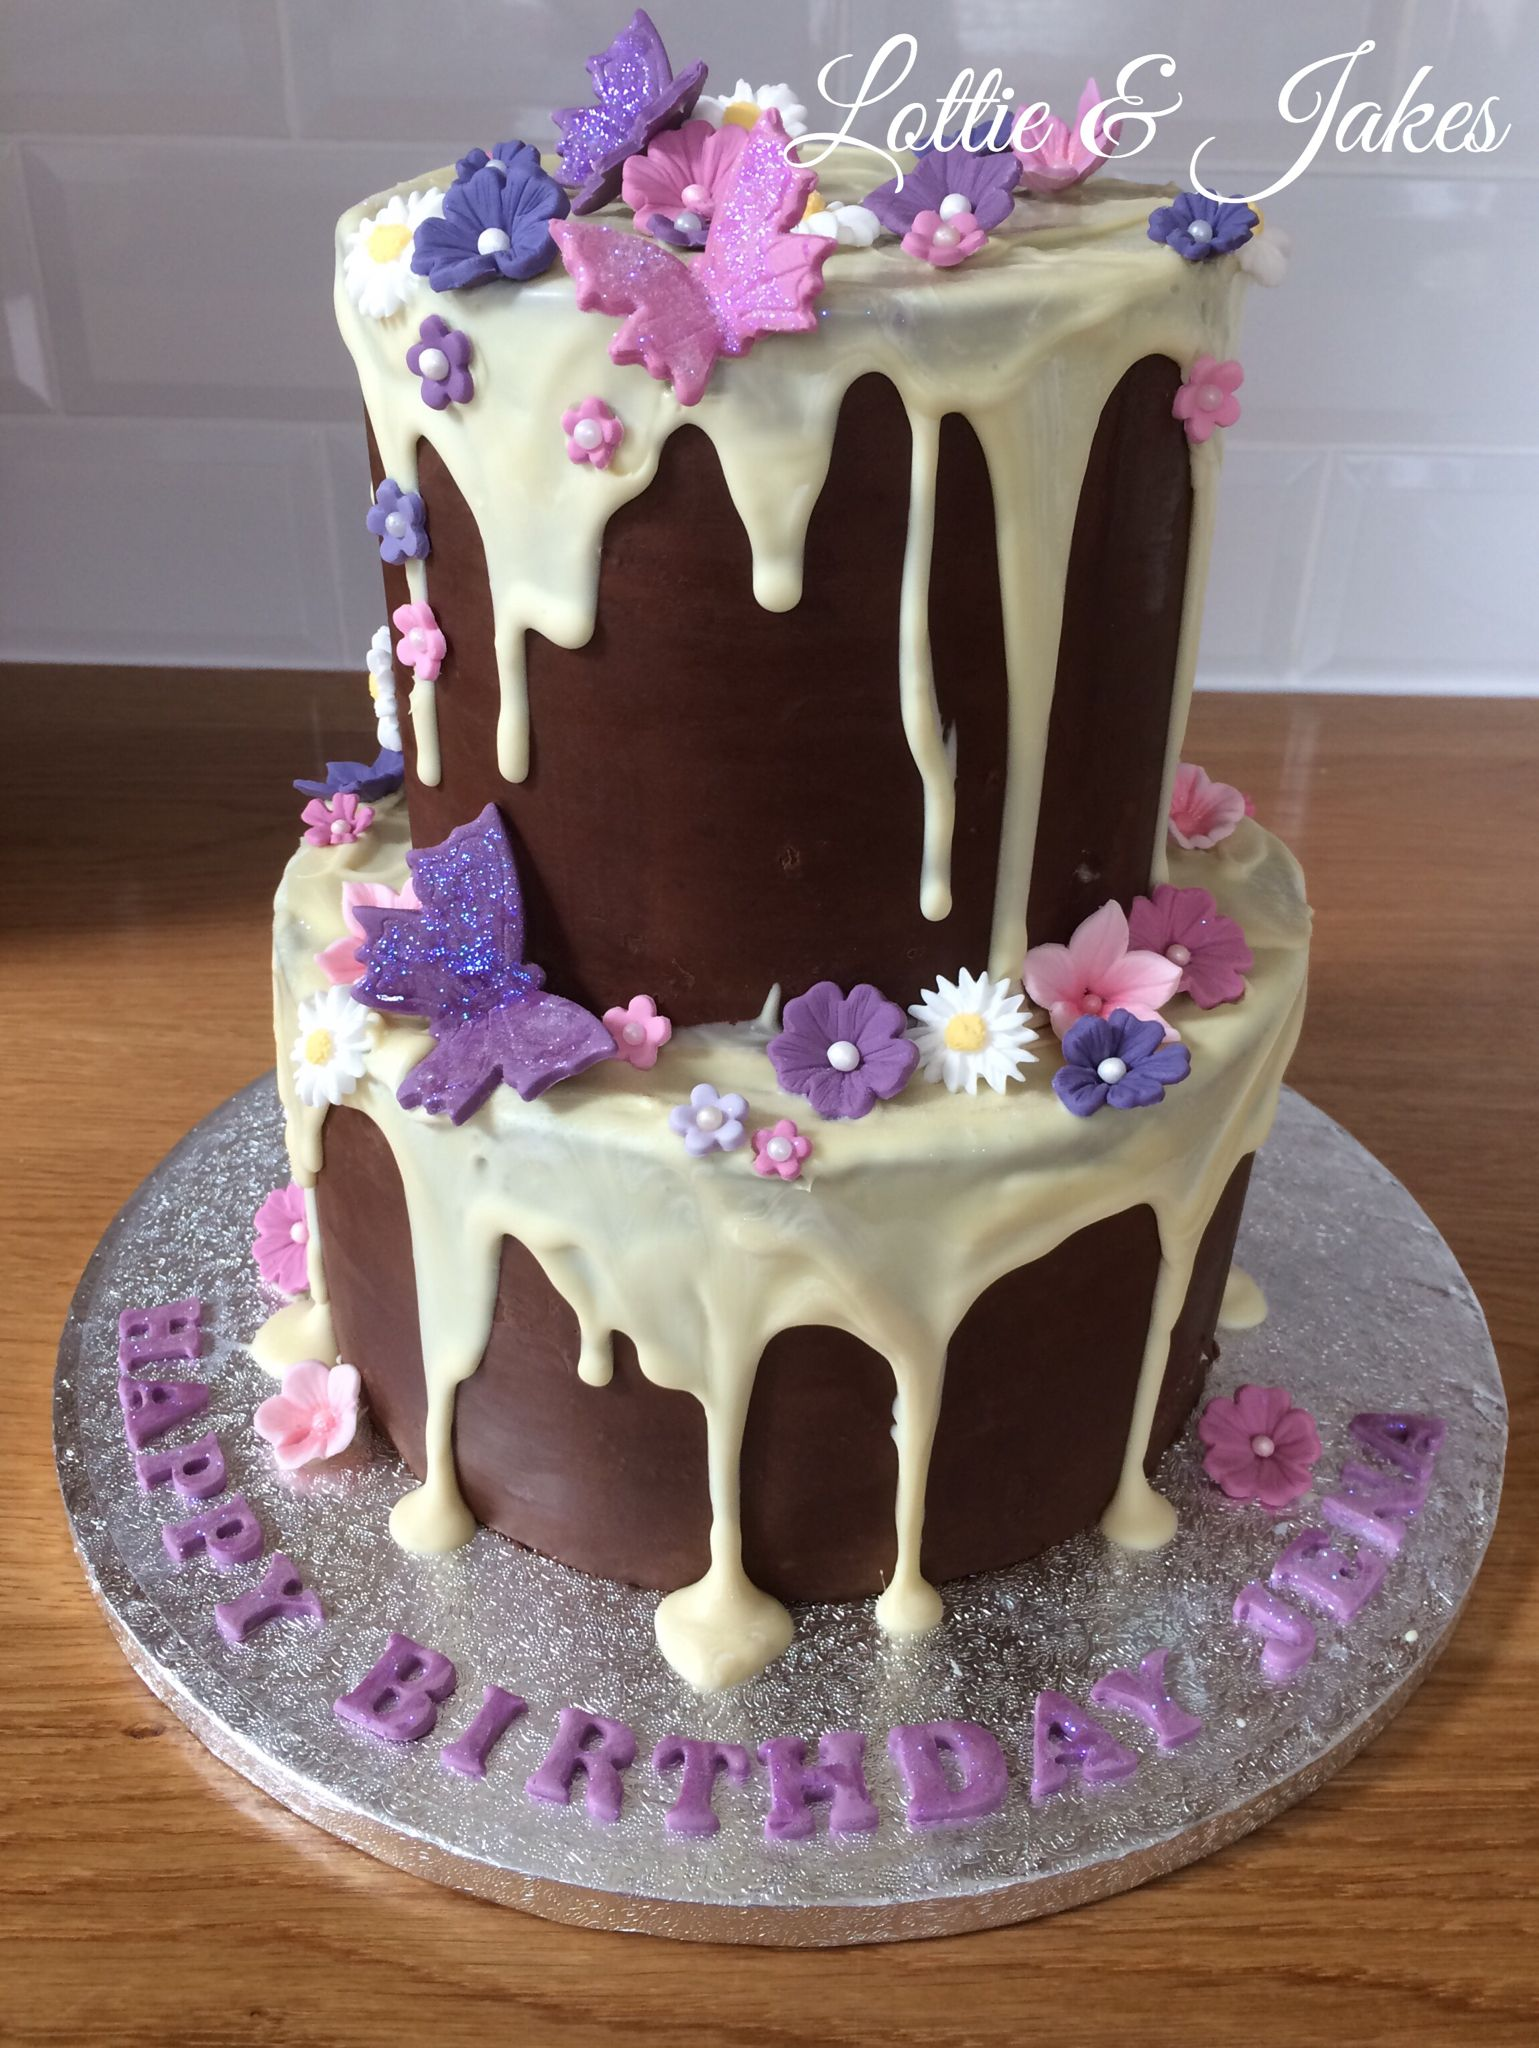 Amazing drip cake with butterflies and flowers 🌸 (With